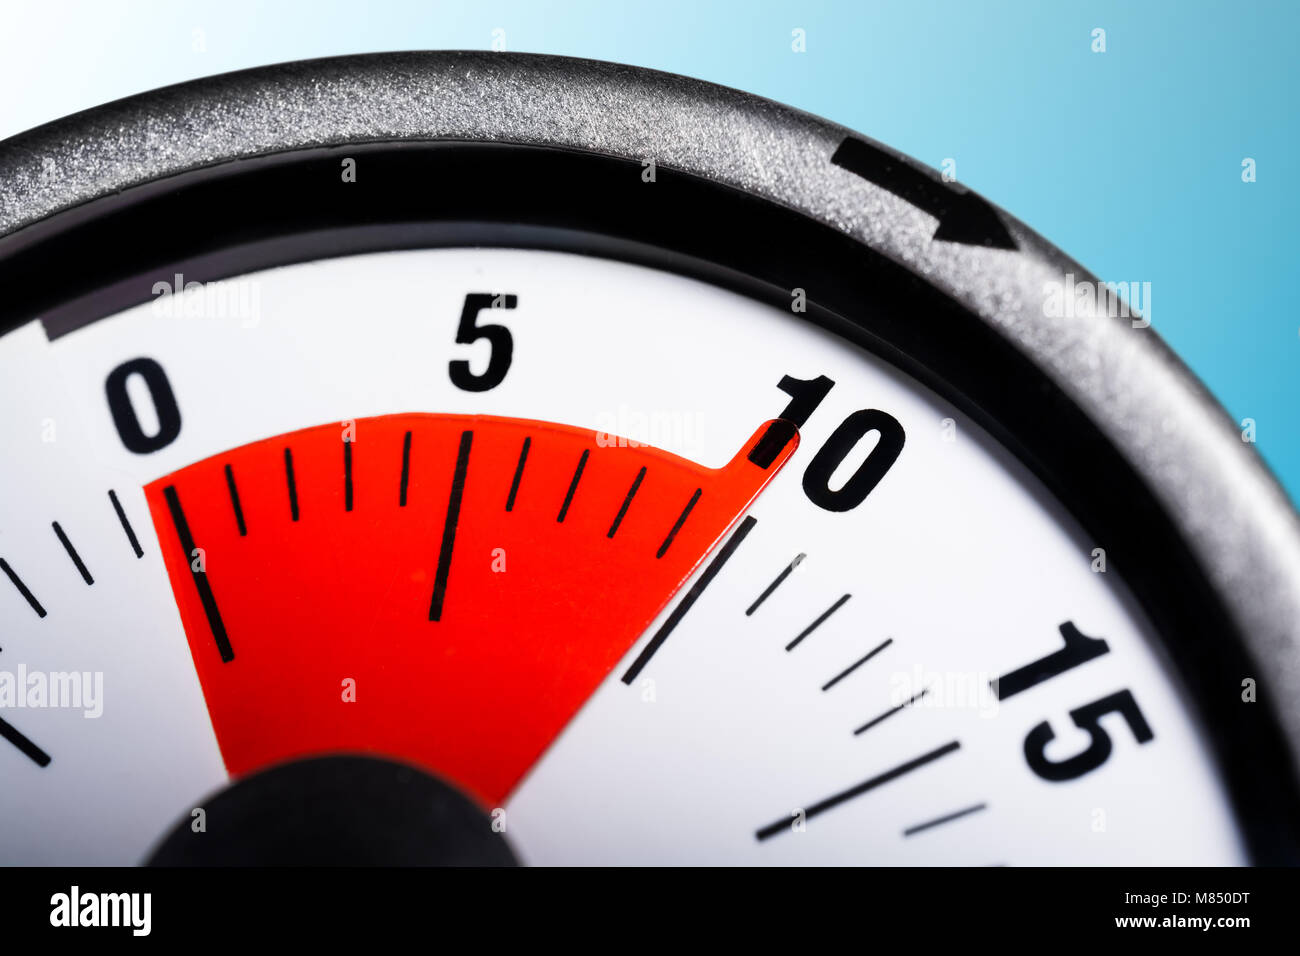 10 minute timer stock photos 10 minute timer stock images alamy